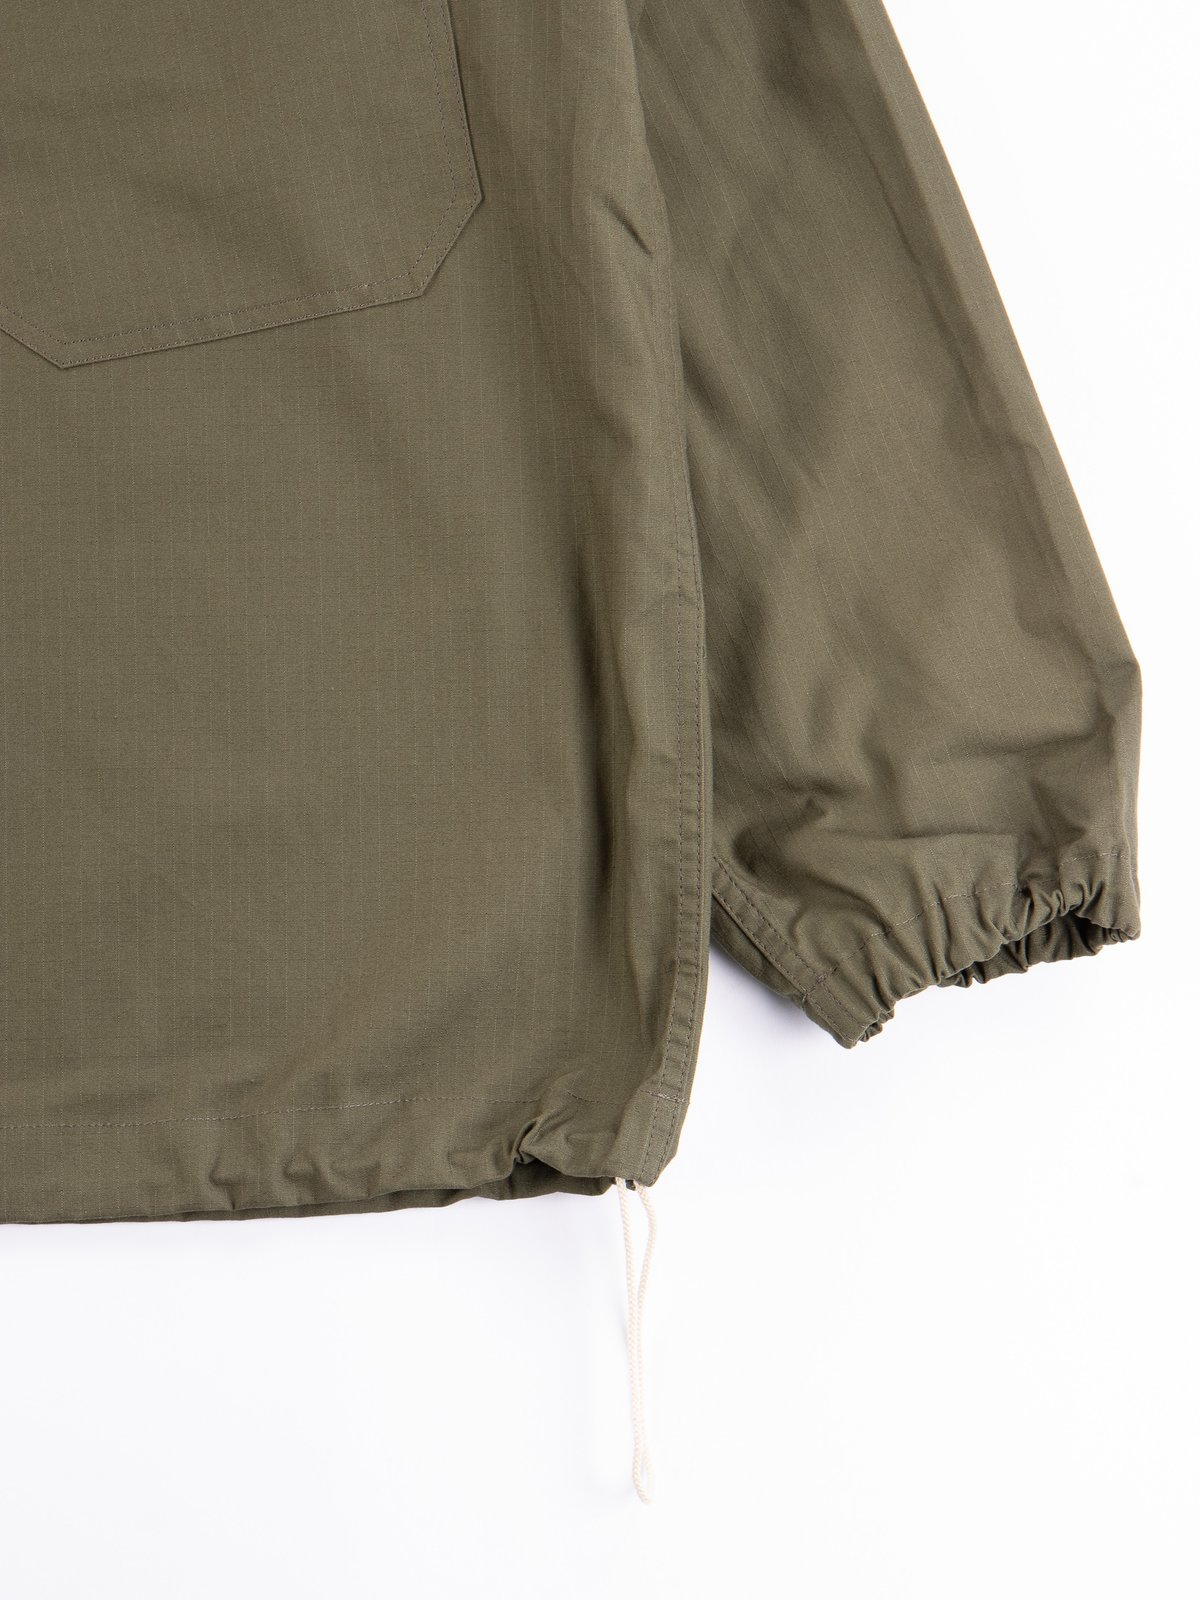 Olive Army Ripstop Salvage Parka - Image 5